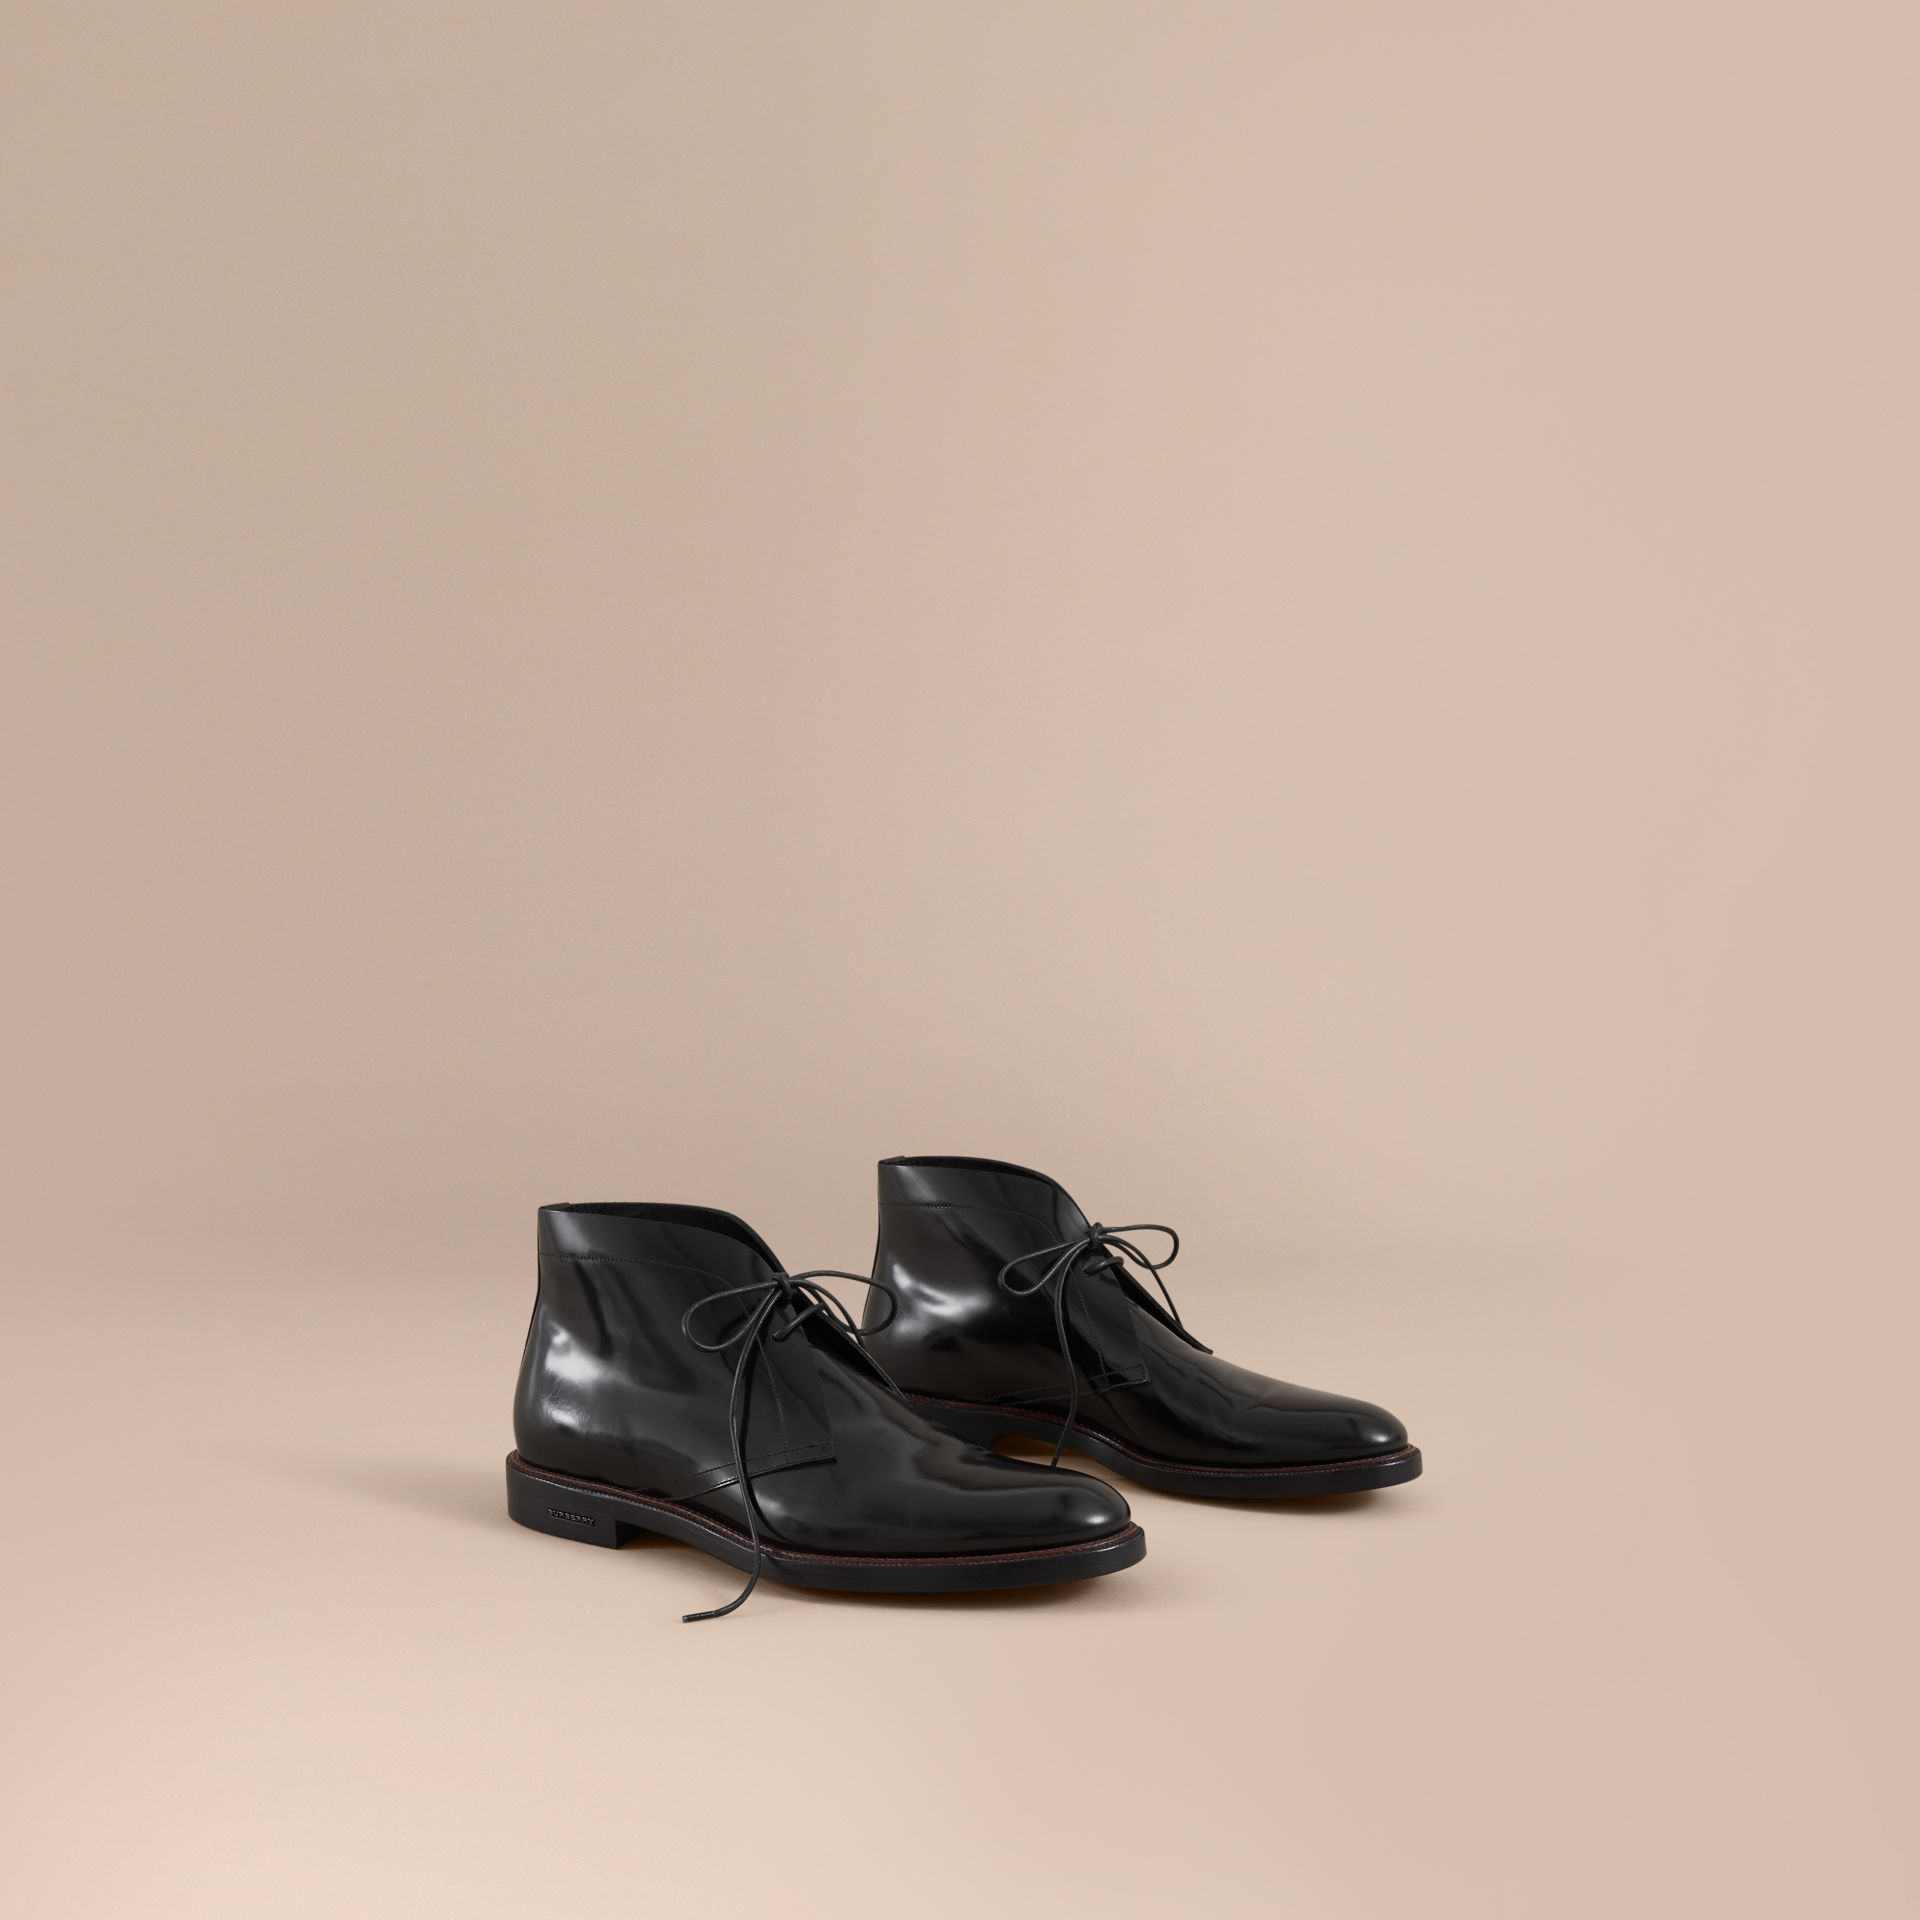 Polished Leather Desert Boots in Black - Men | Burberry - gallery image 1